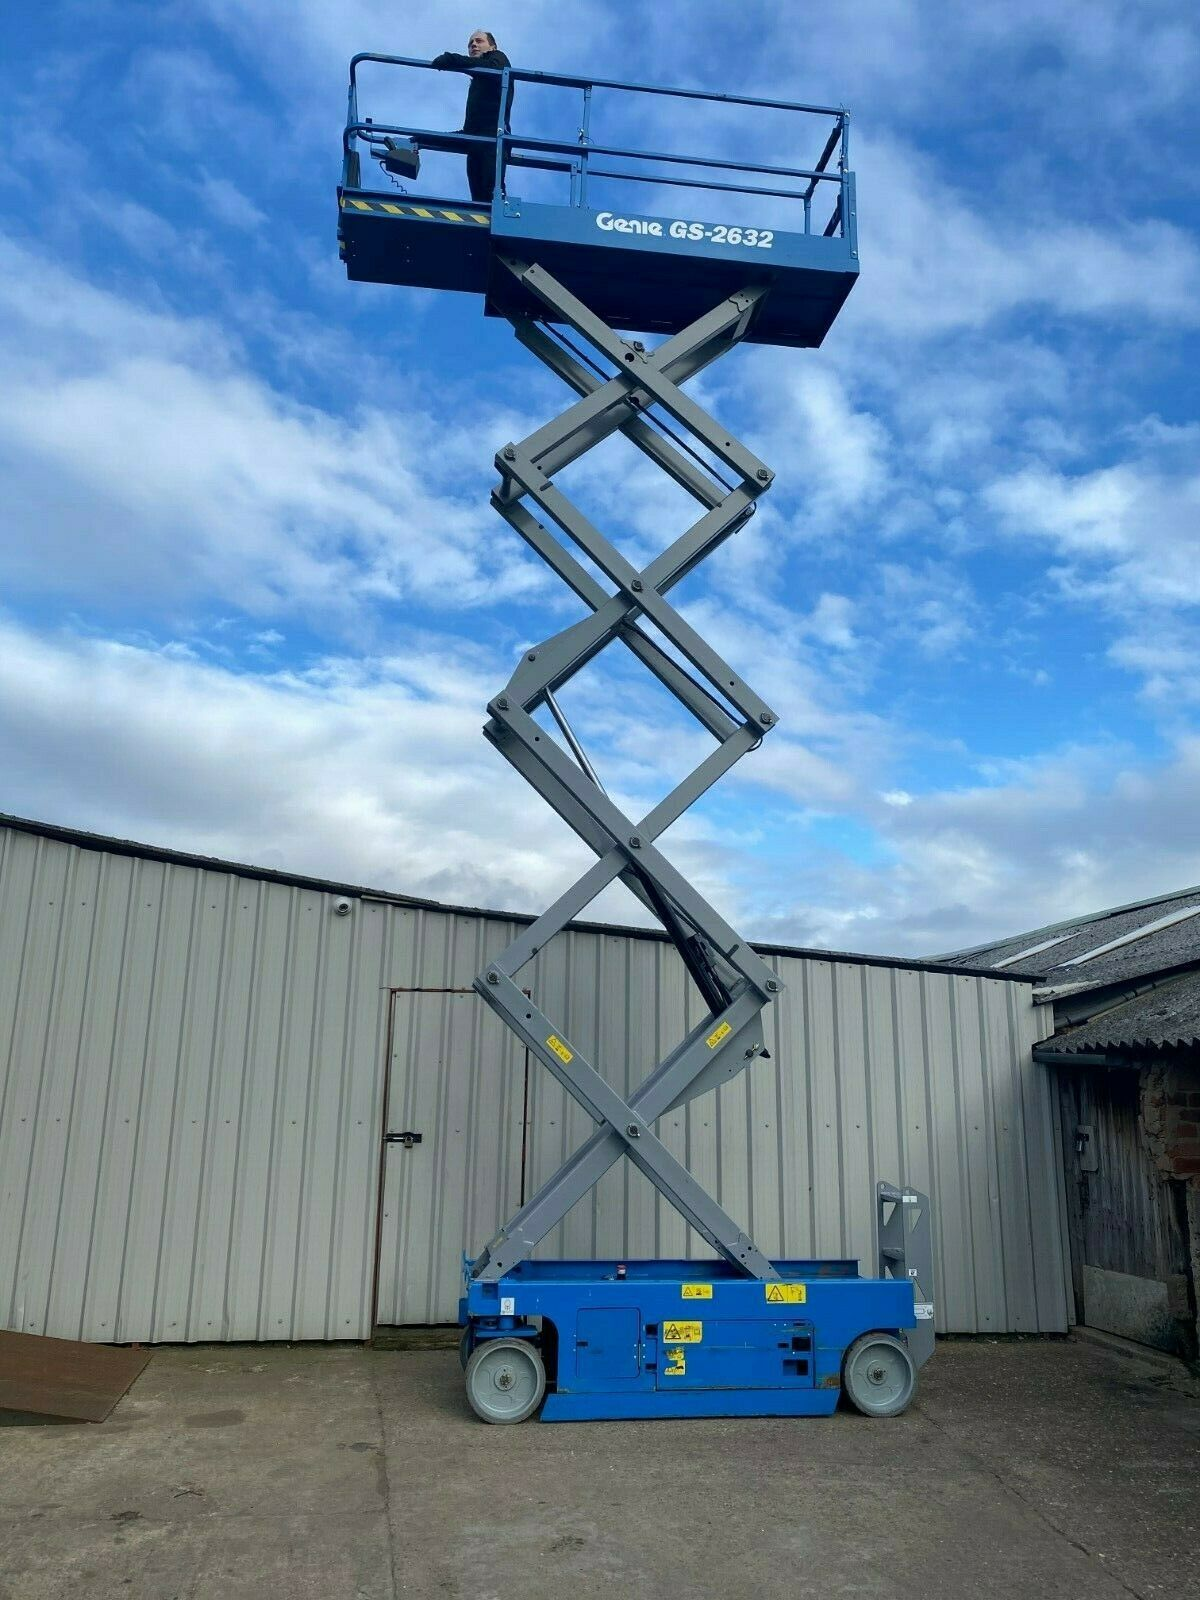 GENIE GS-2632 ACCESS PLATFORM SCISSOR LIFT, YEAR 2014 *PLUS VAT* - Image 2 of 9